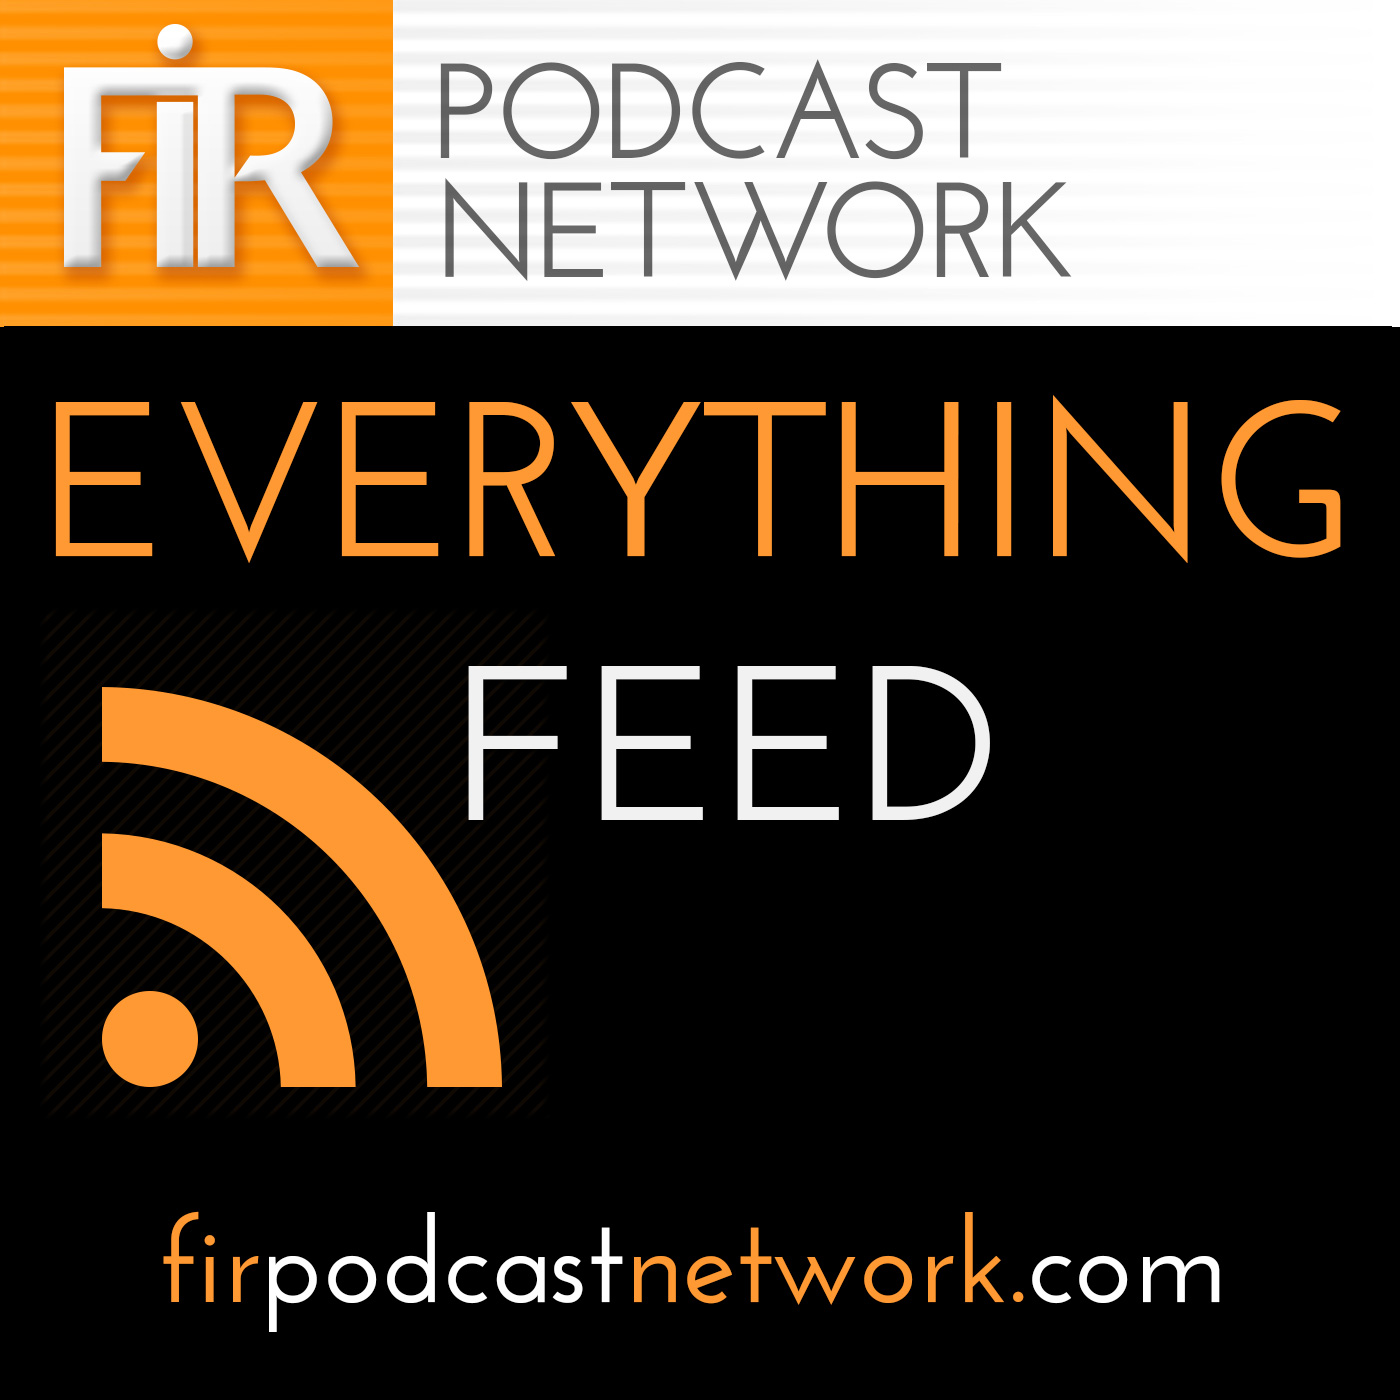 The FIR Podcast Network Everything Feed